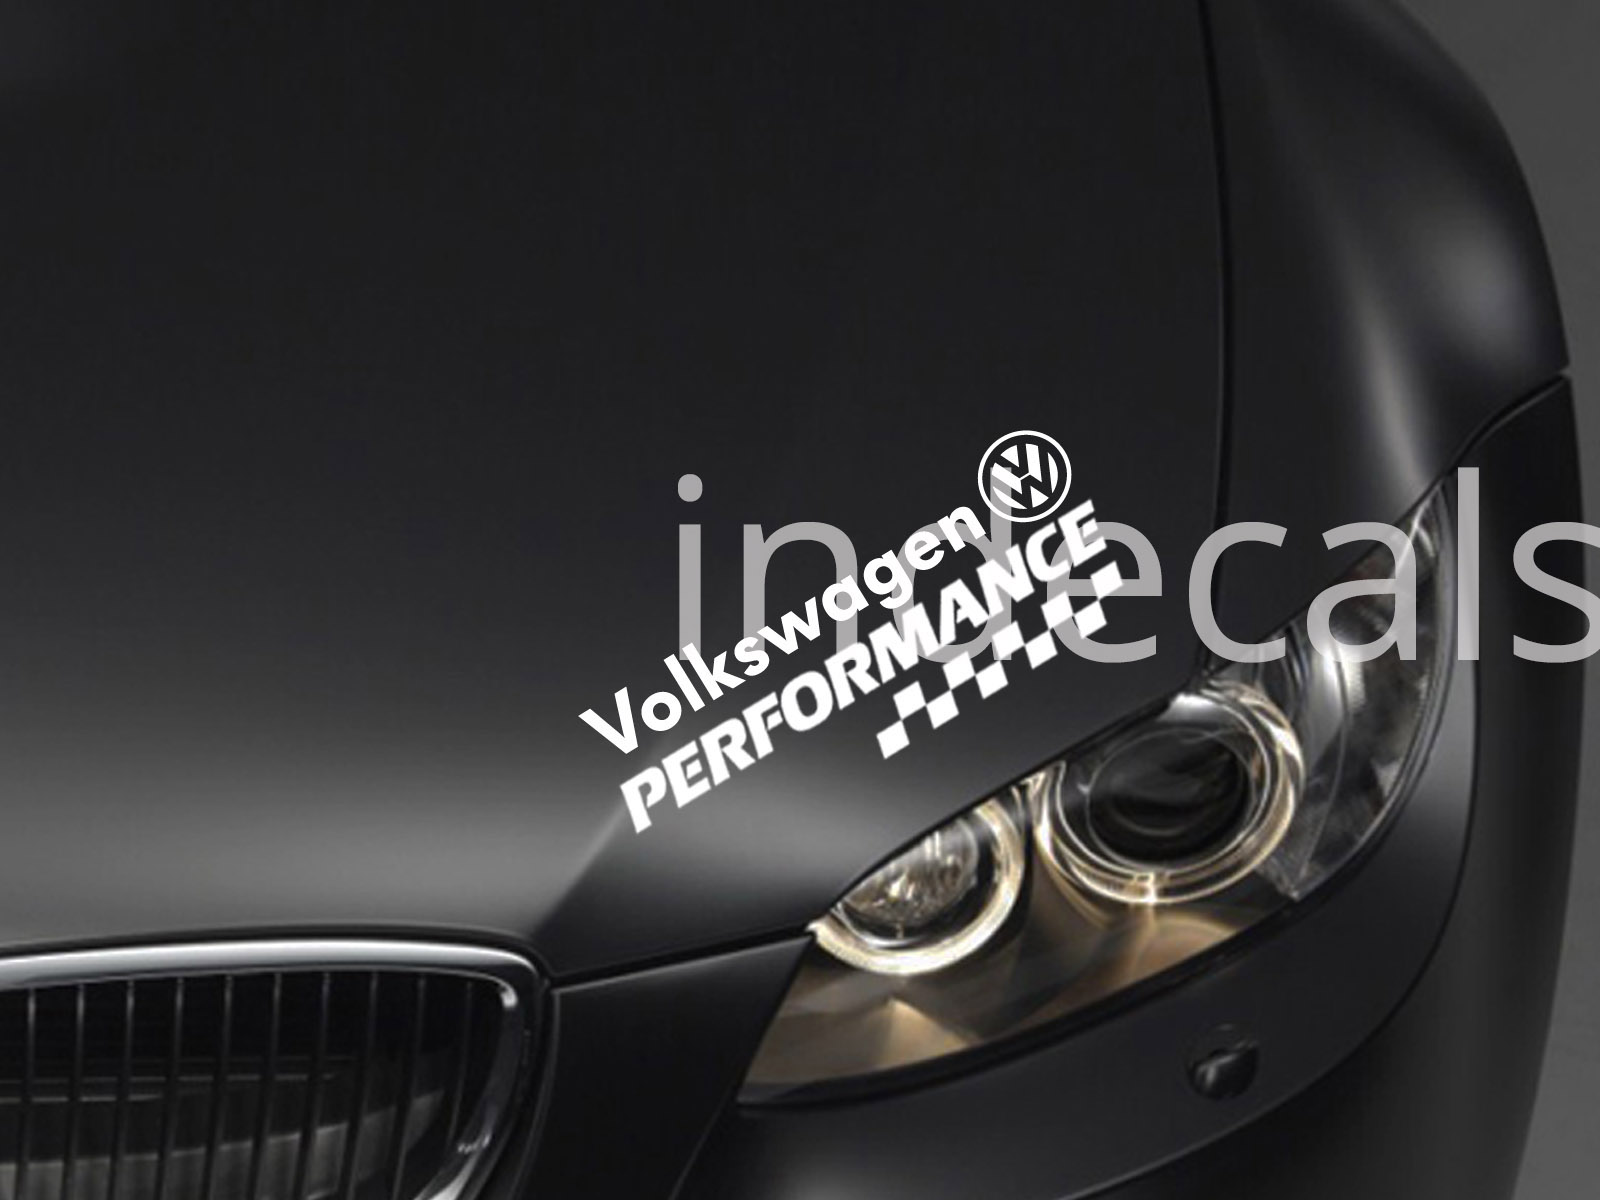 1 x Volkswagen Performance Sticker for Eyebrow - White